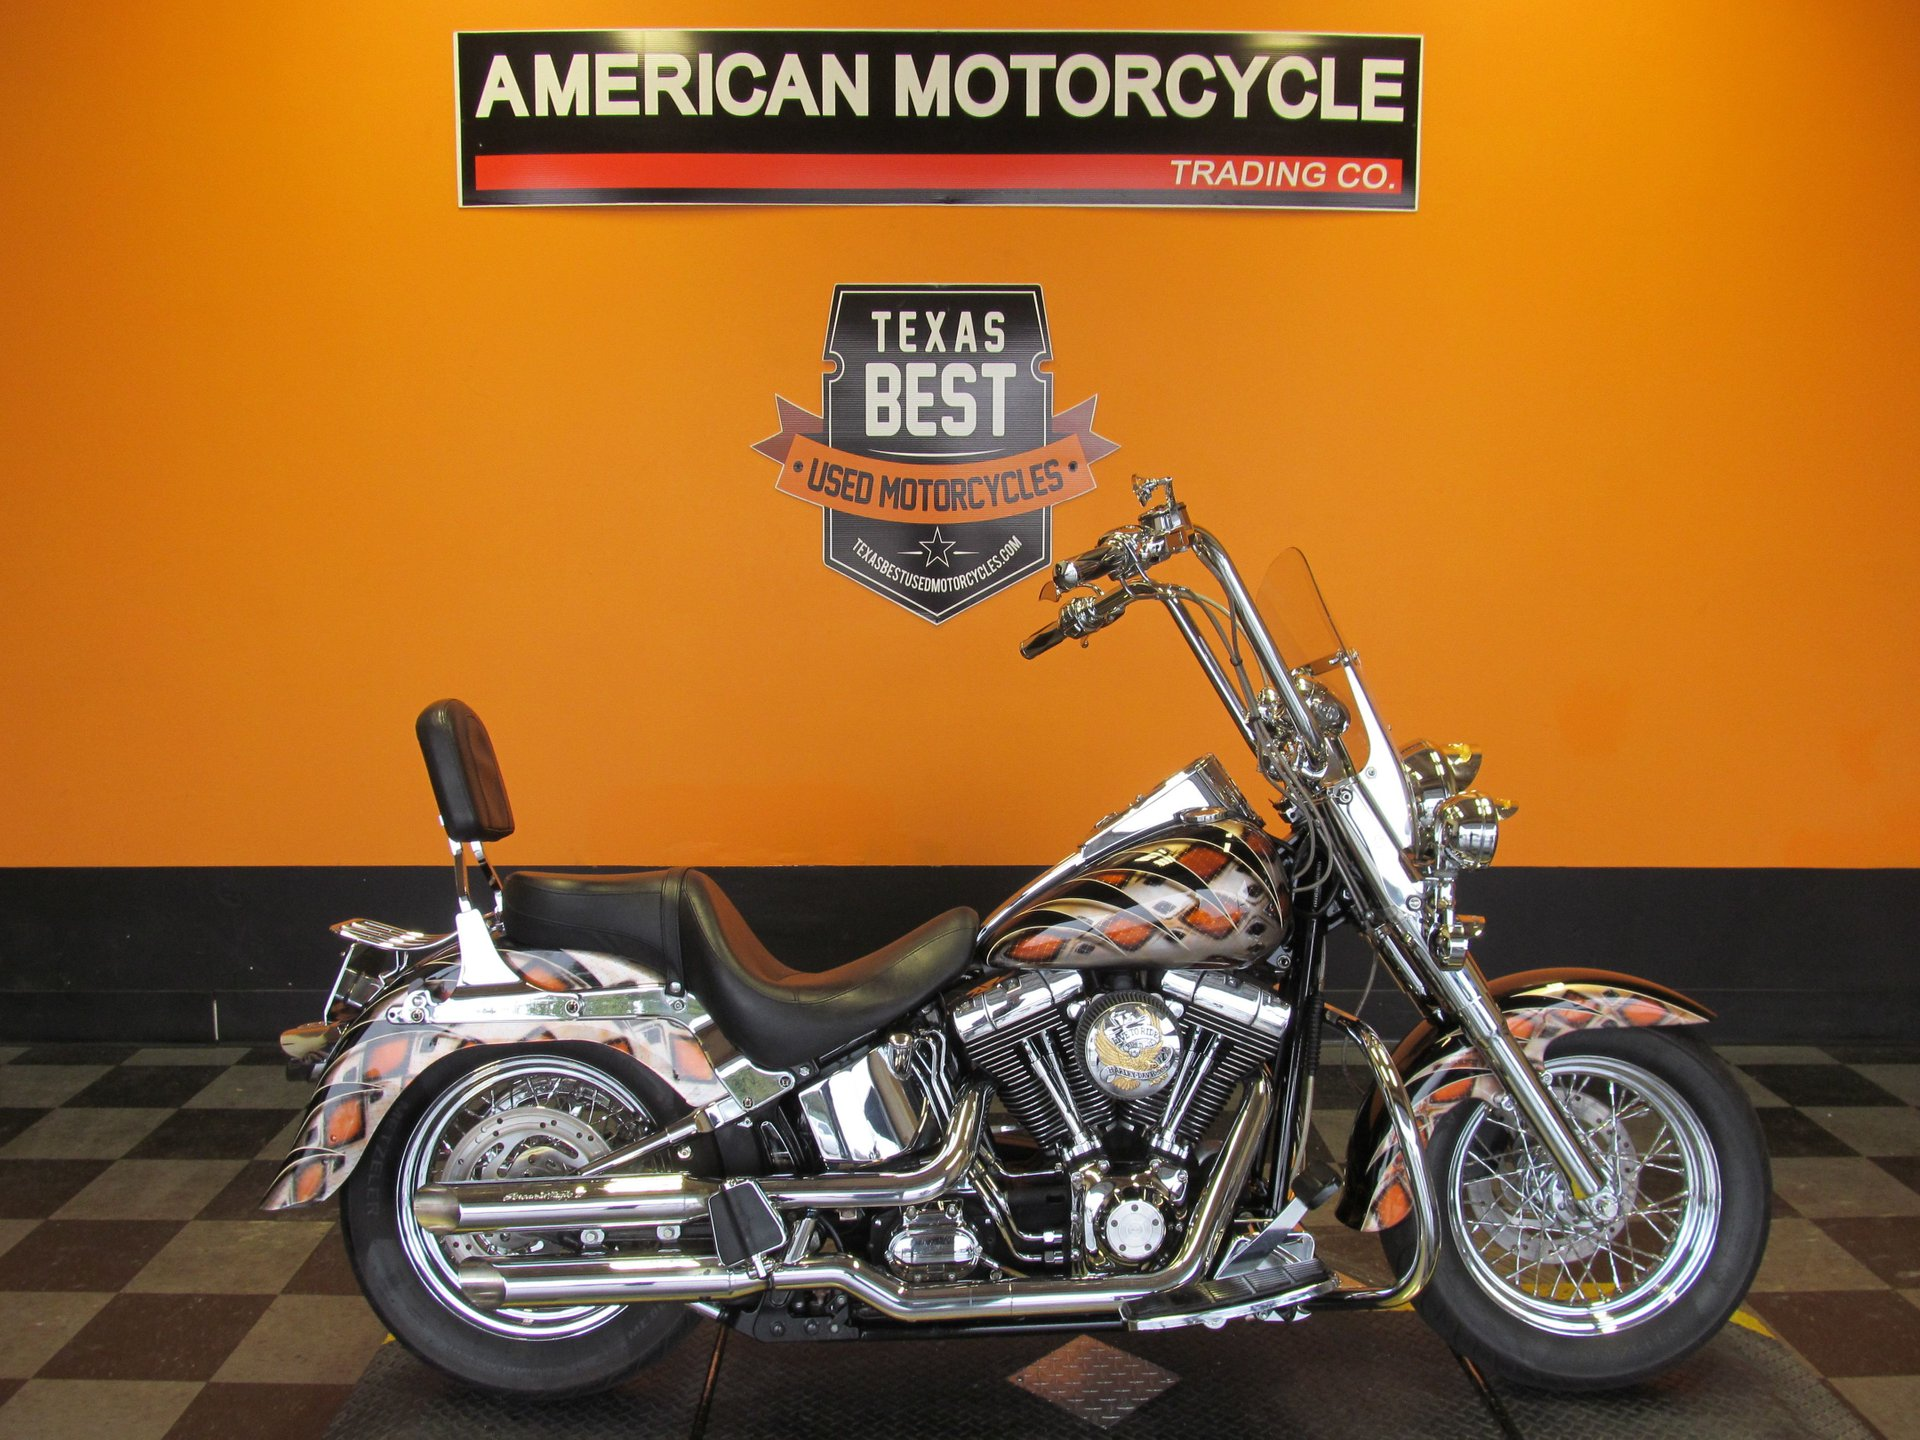 2002 harley davidson softail fat boy flstfi